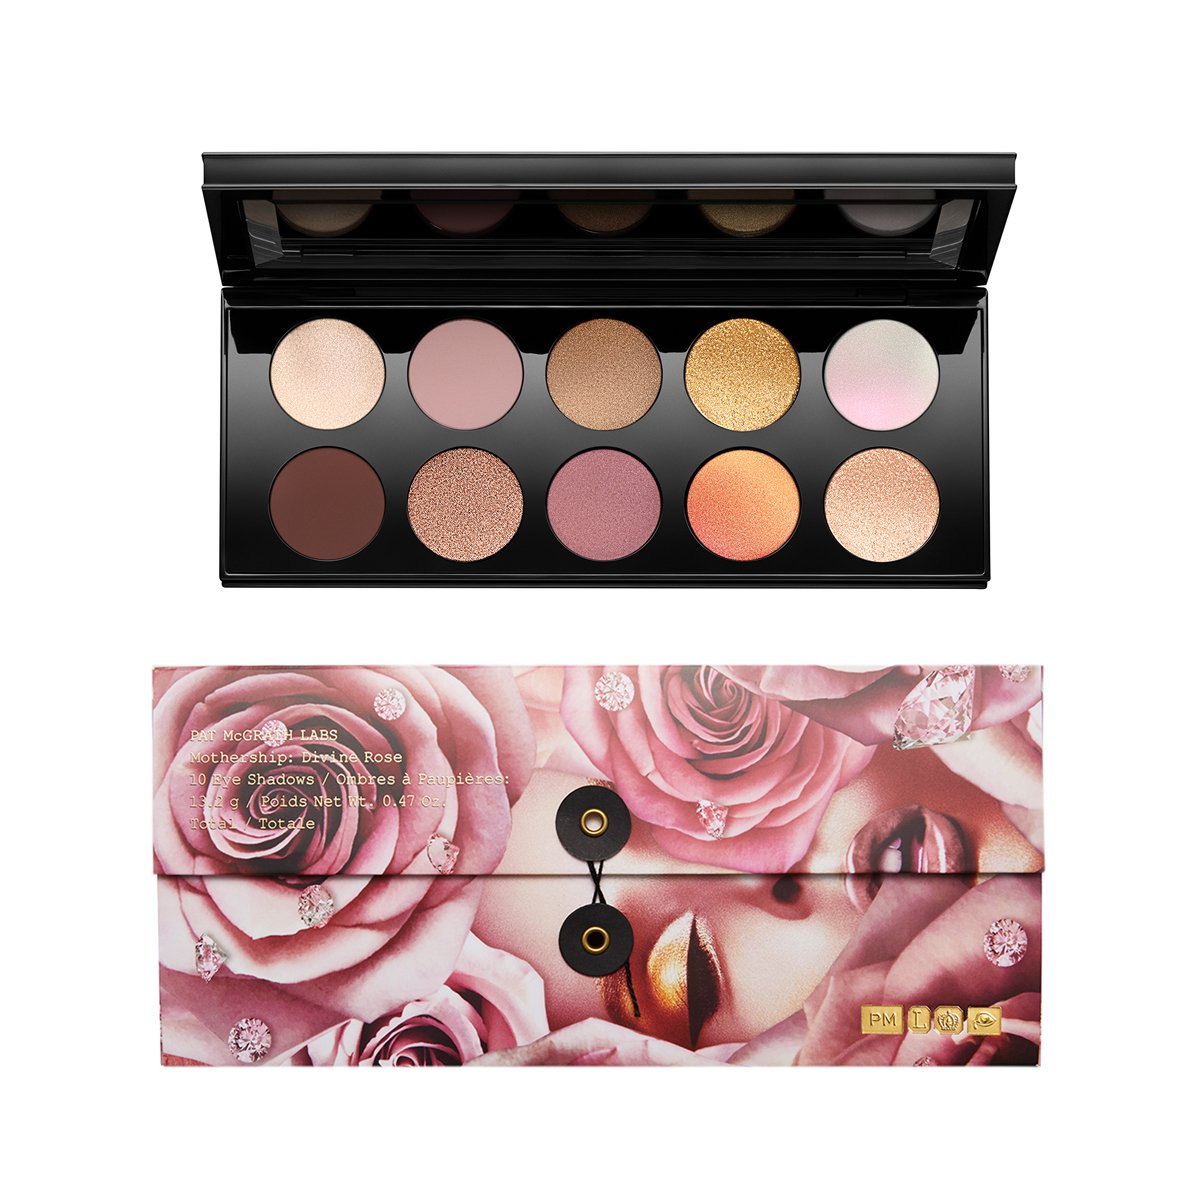 MOTHERSHIP VII EYE SHADOW PALETTE DIVINE ROSE COLLECTION - PAT McGRATH LABS